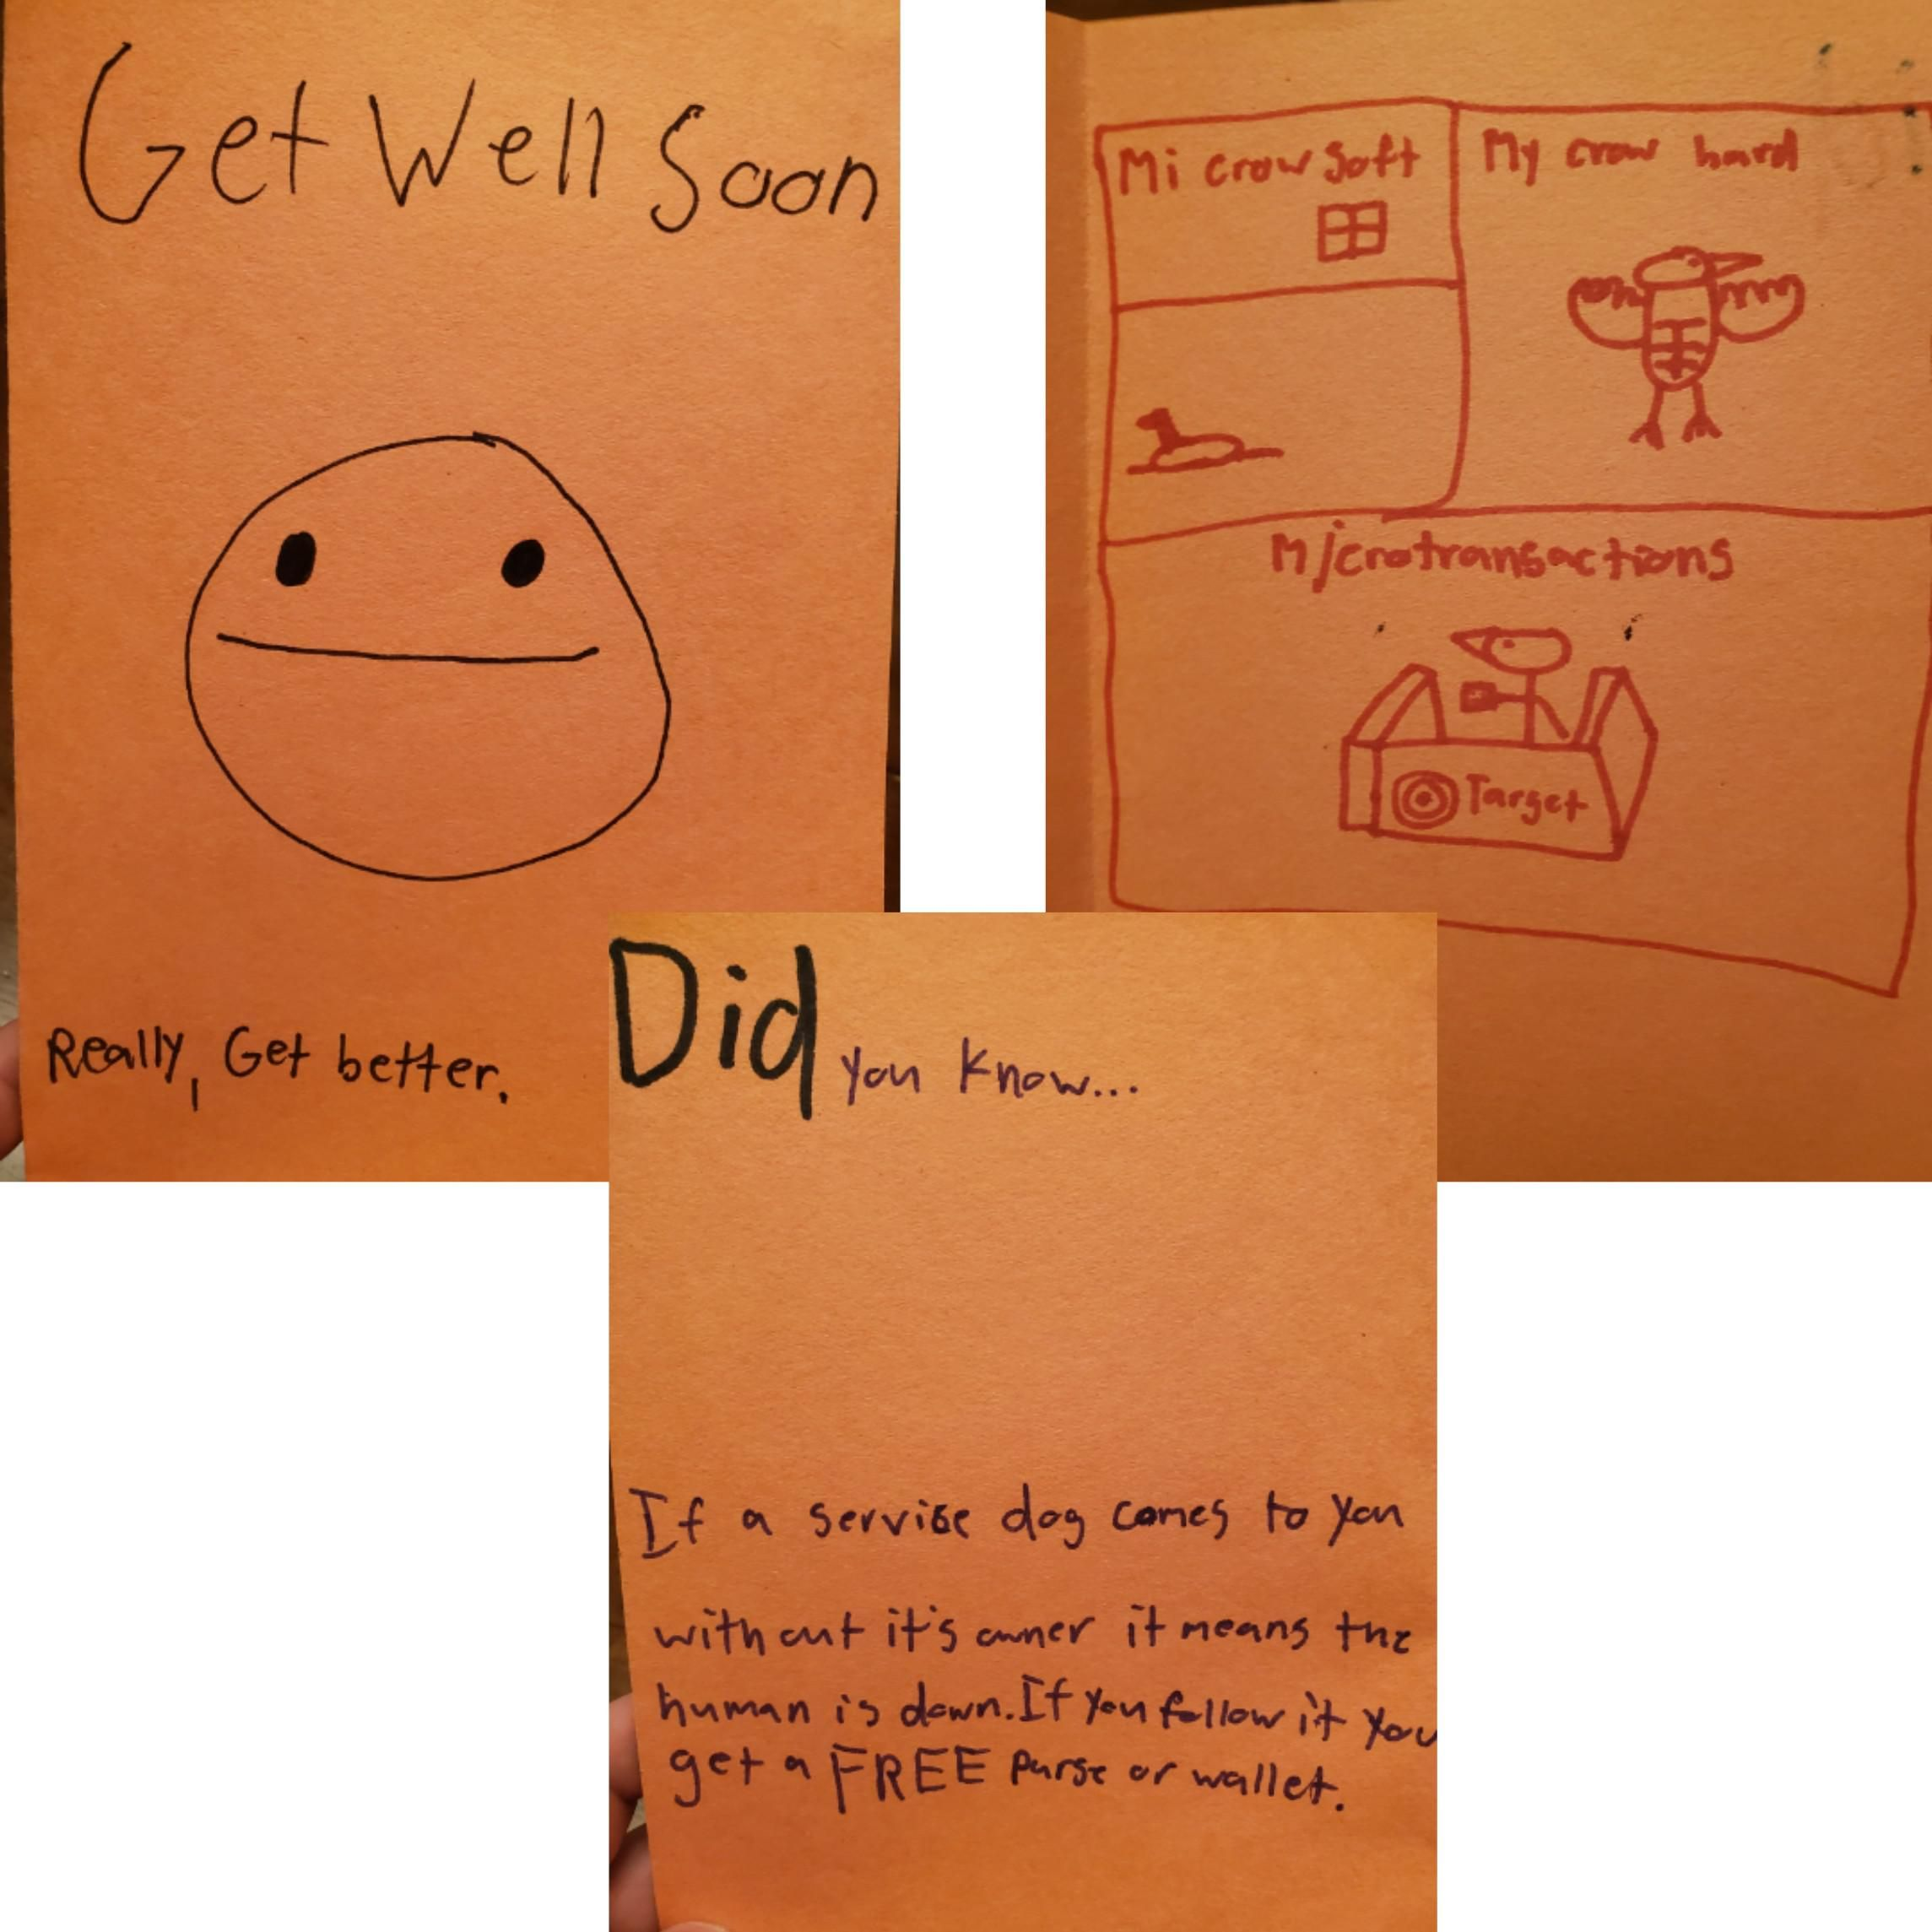 My buddies brother is sick and this card was left for him by one of his class mates. Serious gold. This needs to be acknowledged.